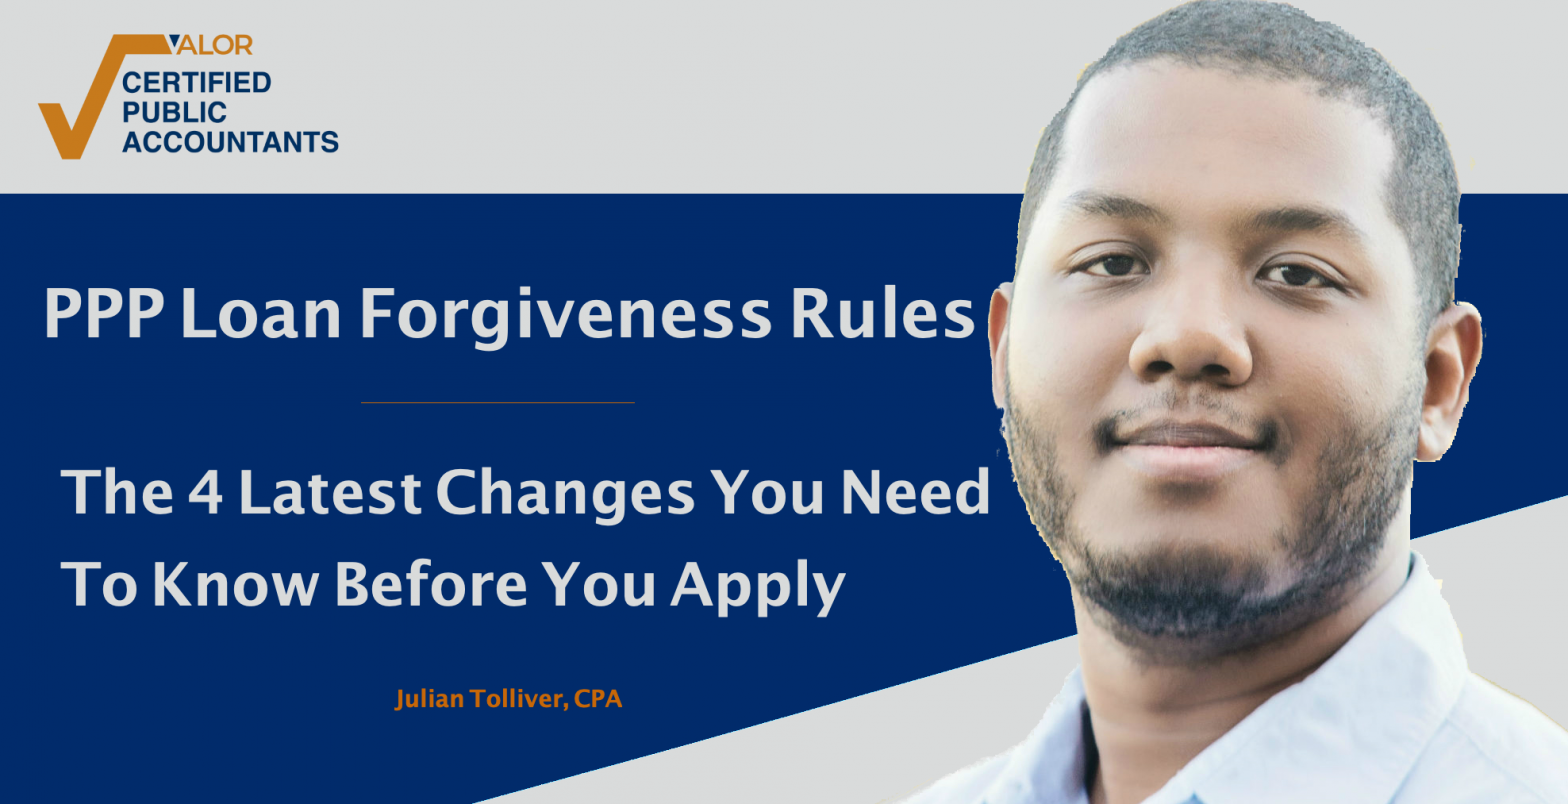 PPP Loan Forgiveness Rules Update: The 4 Changes To Know Before You Apply